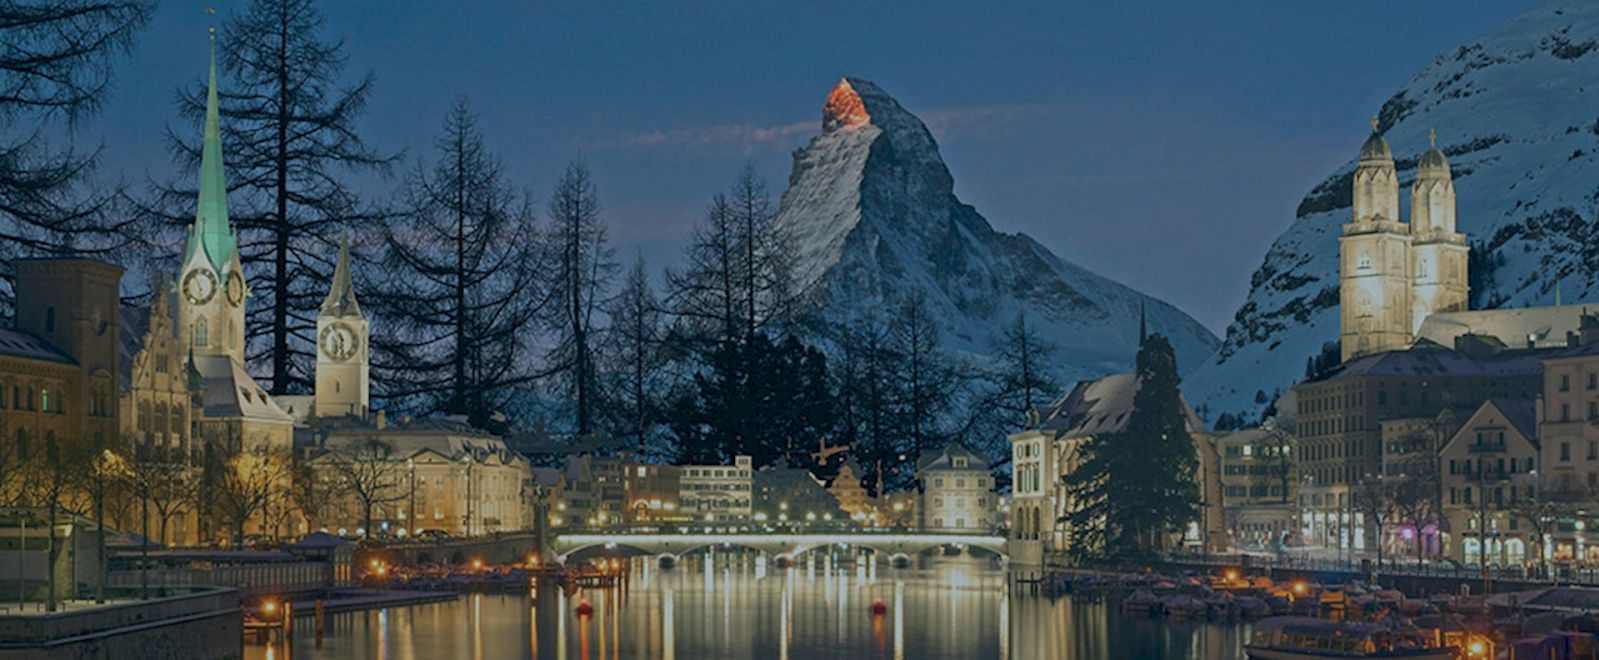 Zurich combines with Zermatt for the ultimate ski resort this winter, Matterhorn in Zurich, Zurmatt